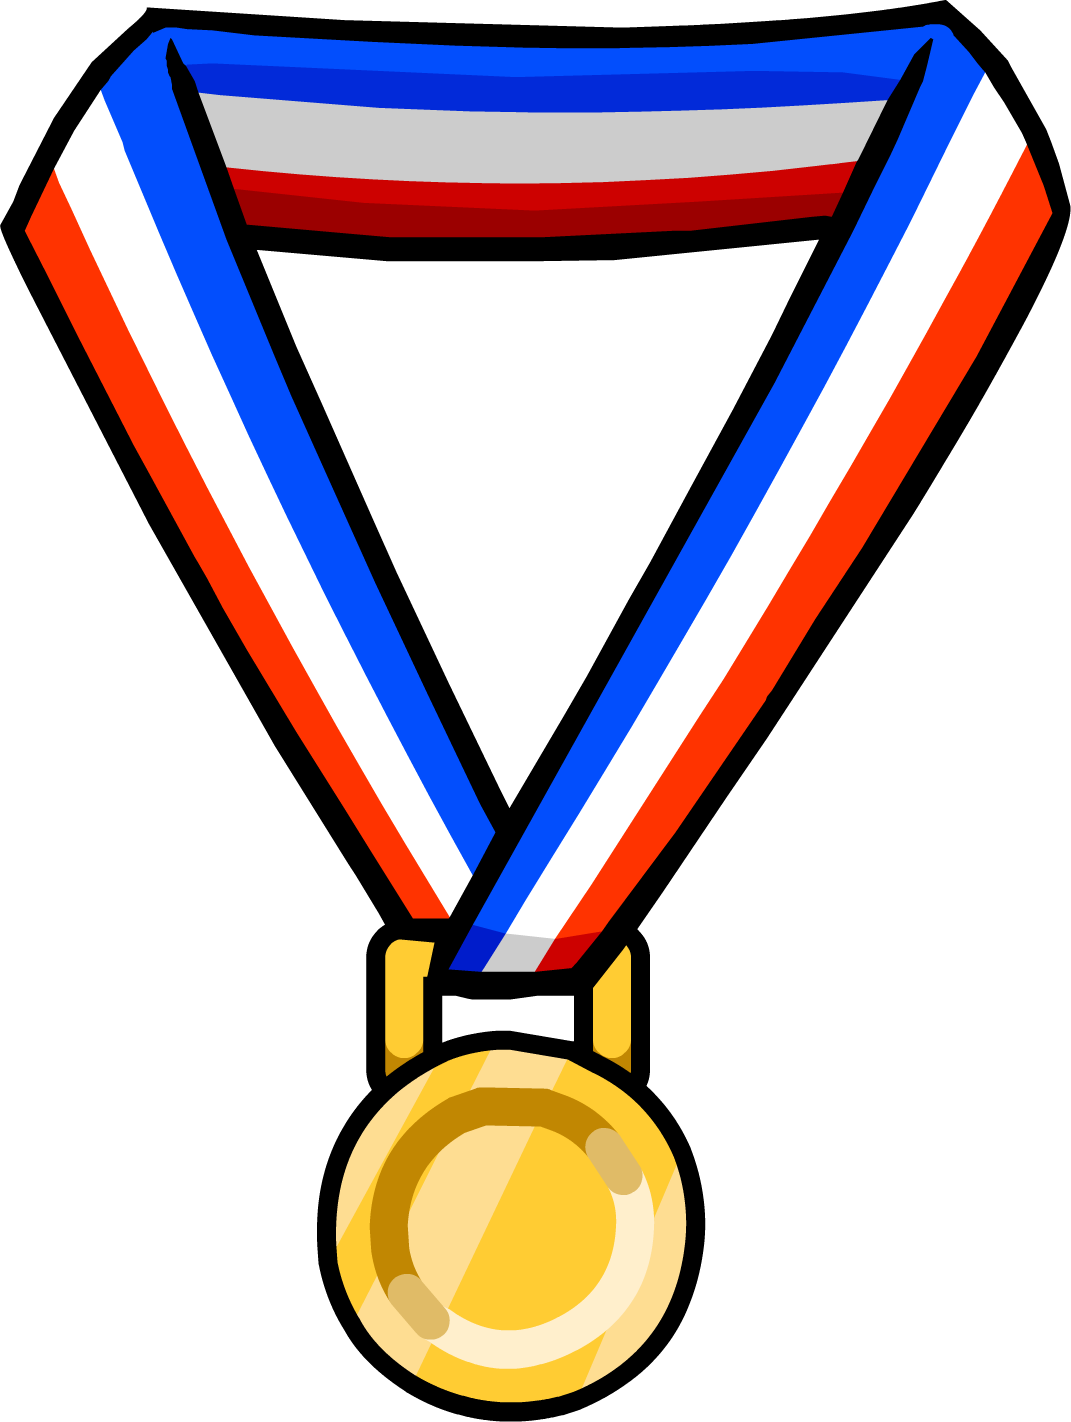 http://vignette2.wikia.nocookie.net/clubpenguin/images/a/a0/GoldMedal.png/revision/latest?cb=20131005194016